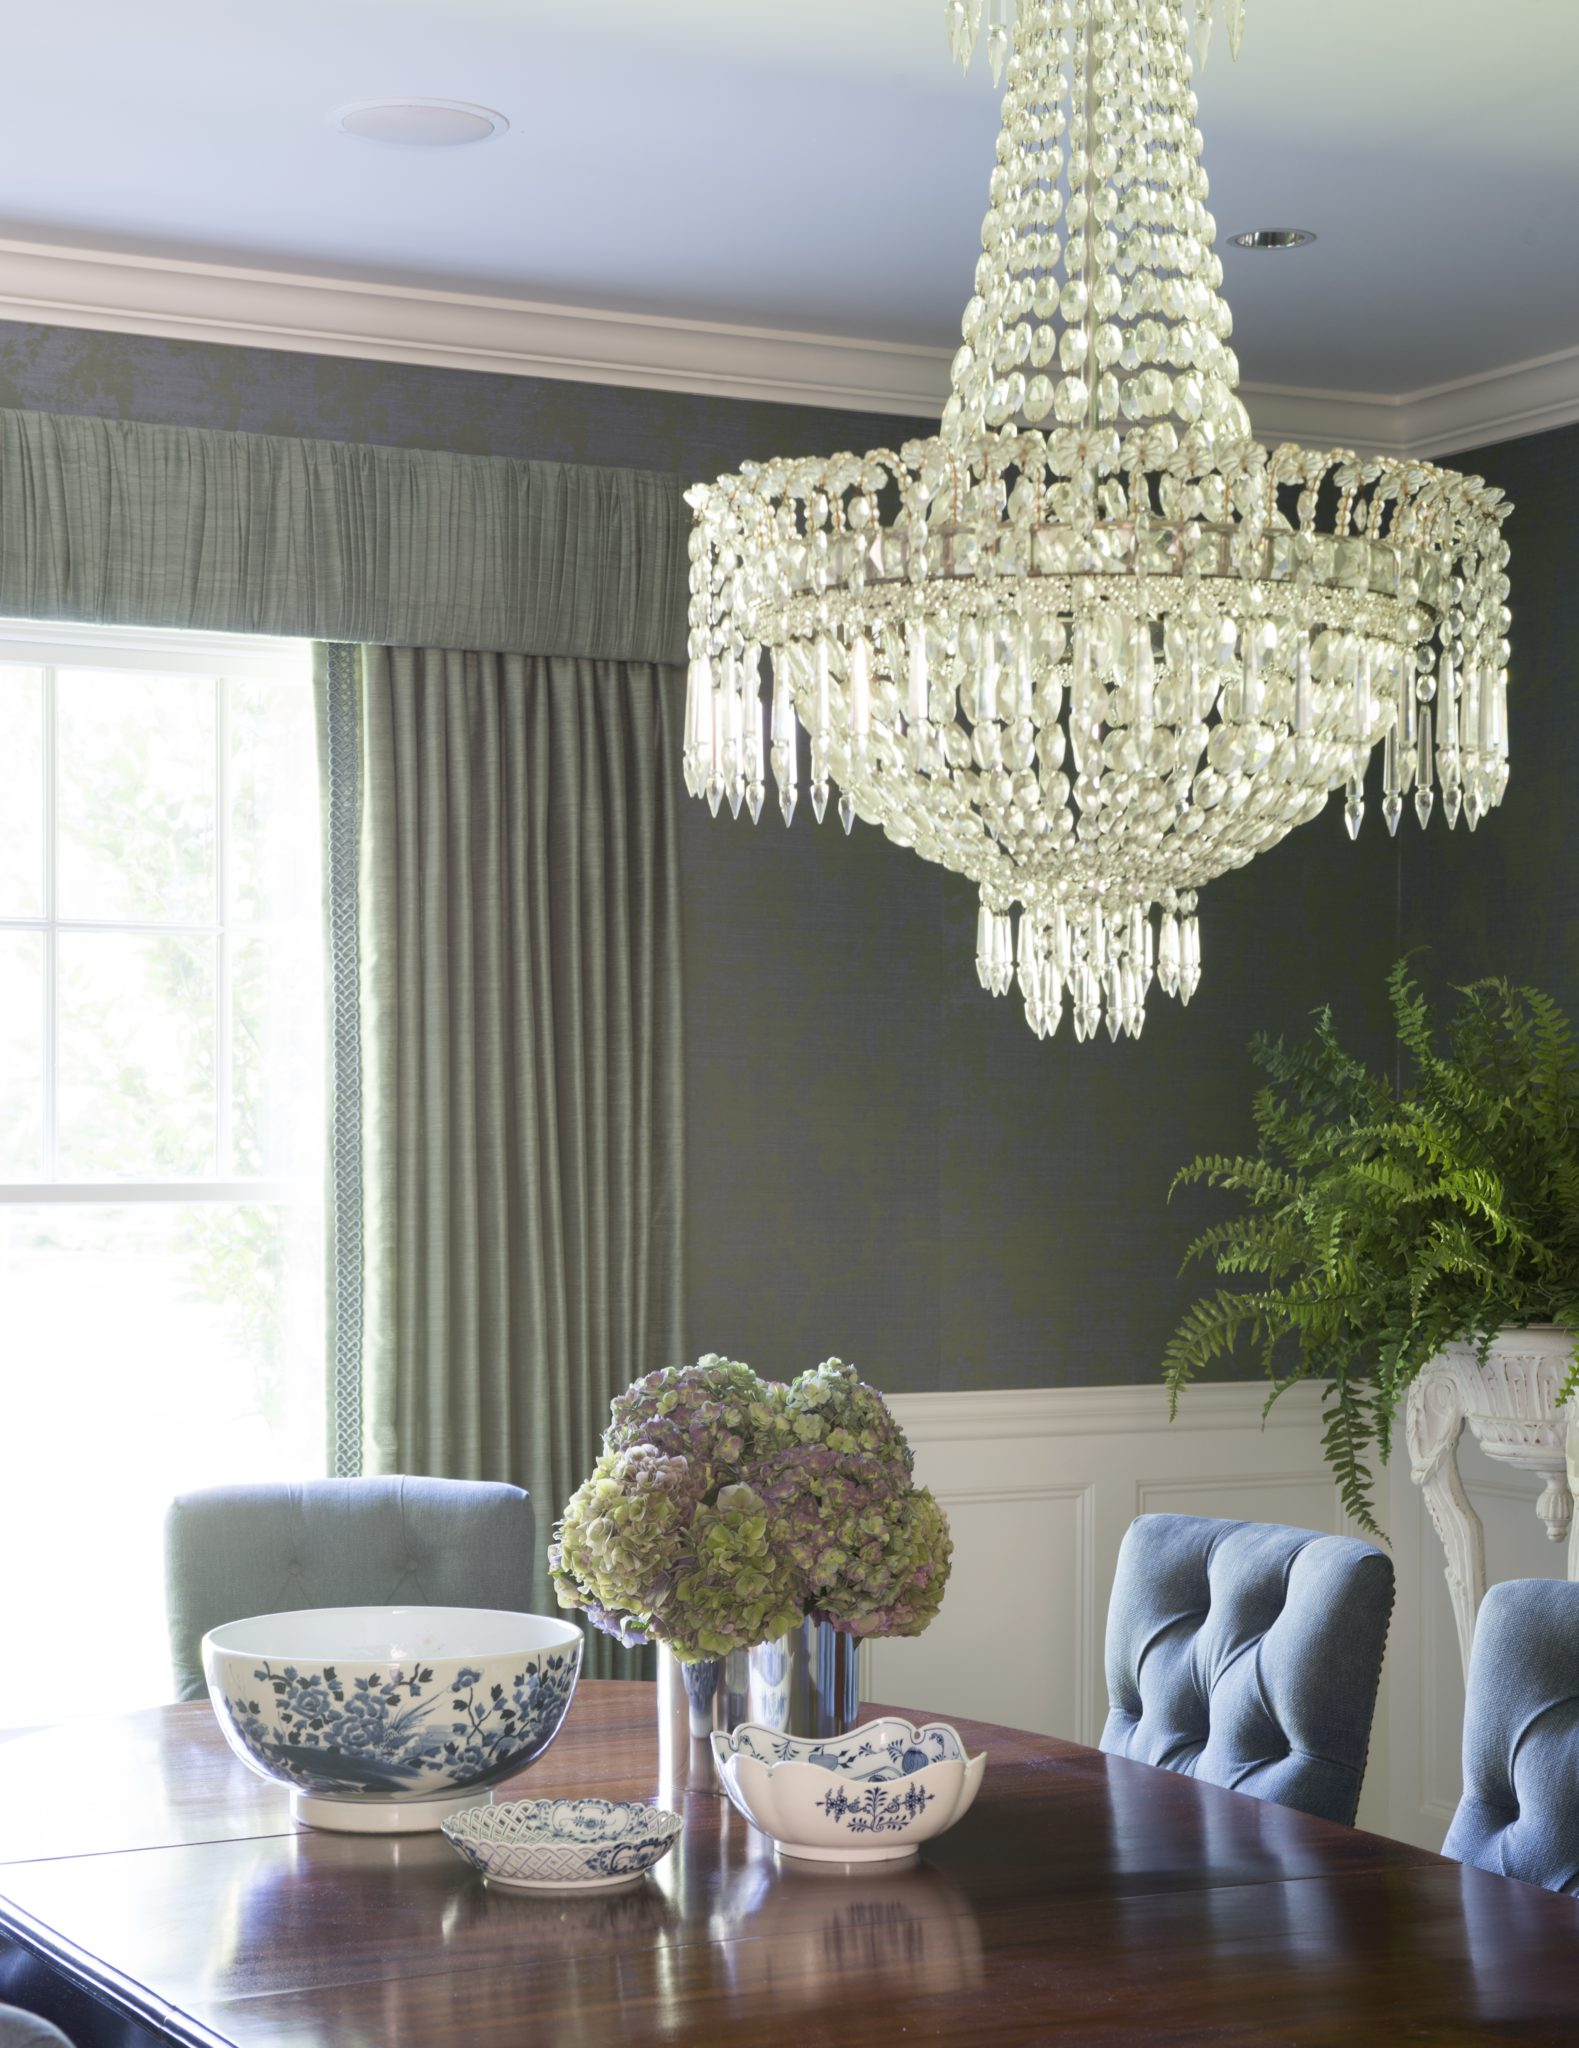 A statement chandelier in a dining room by Allison Caccoma, Inc.